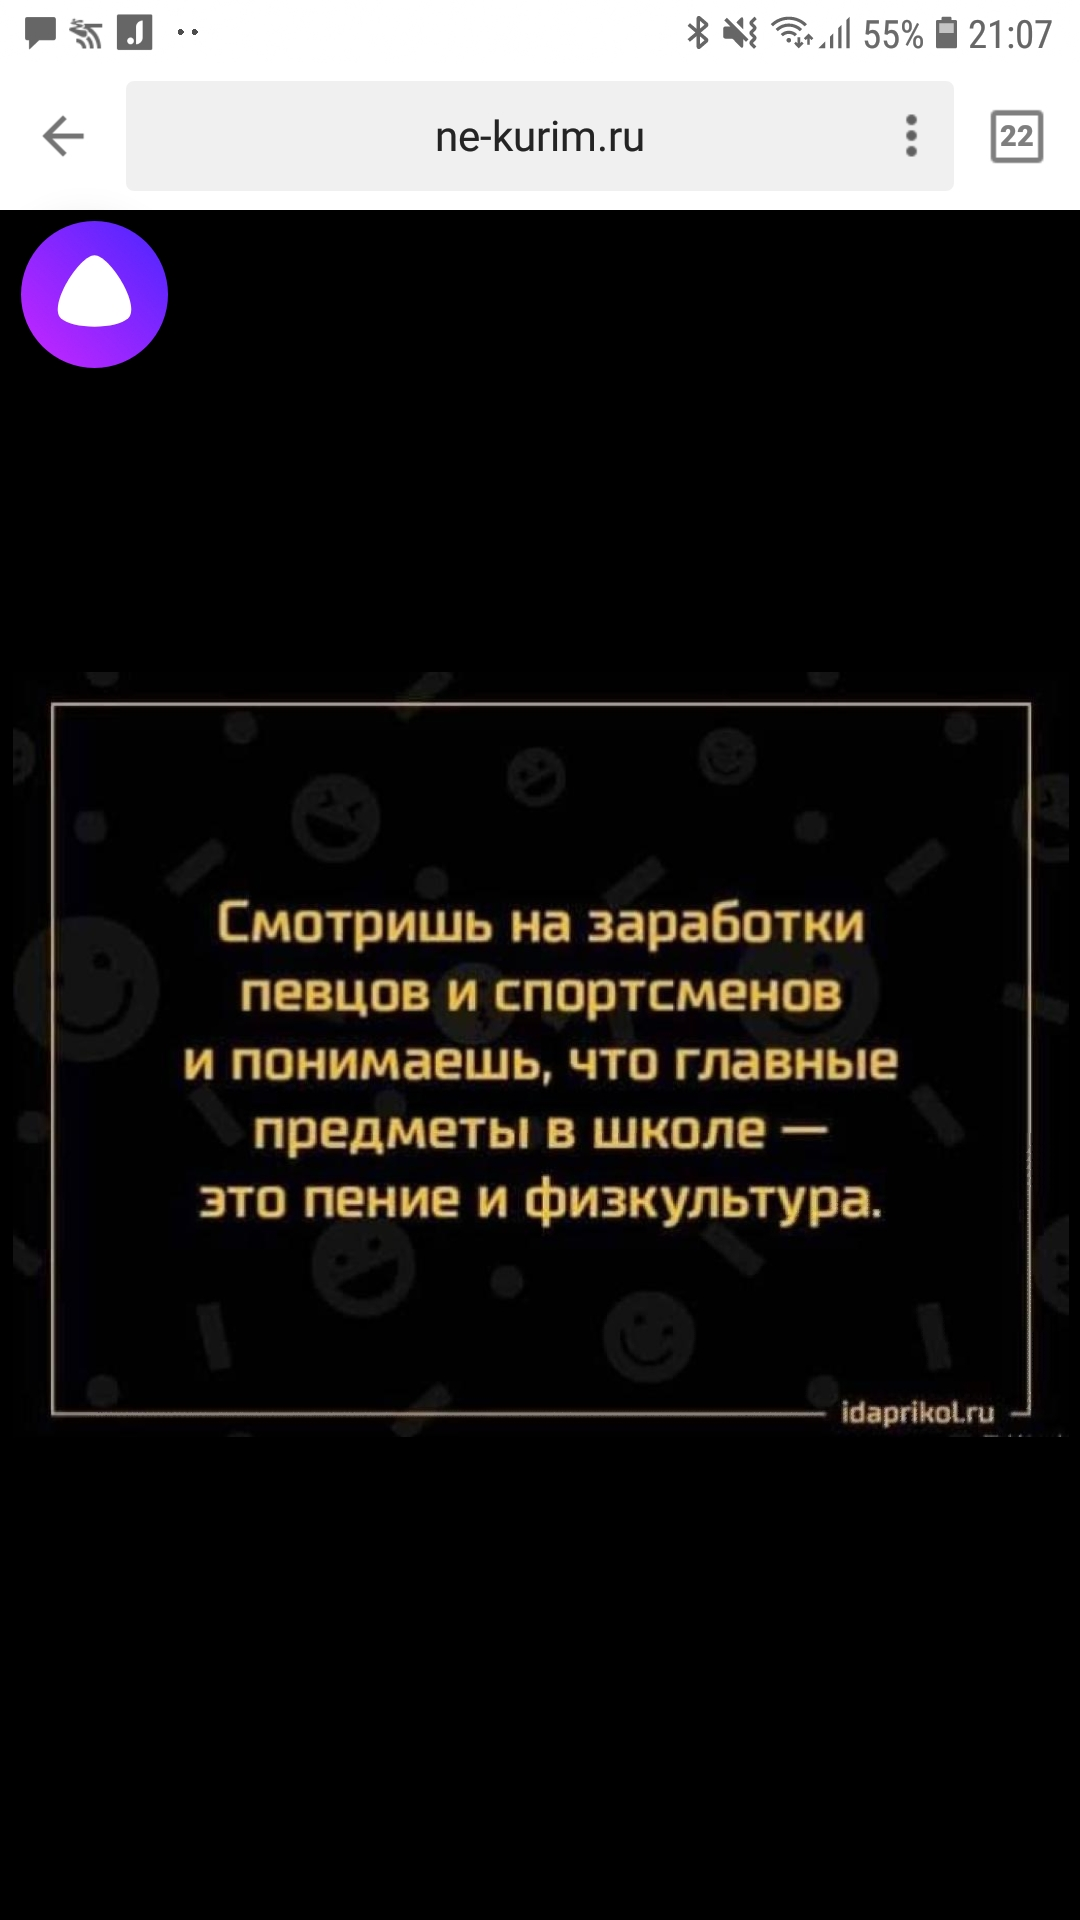 Screenshot_20190723-210737_Yandex.jpg